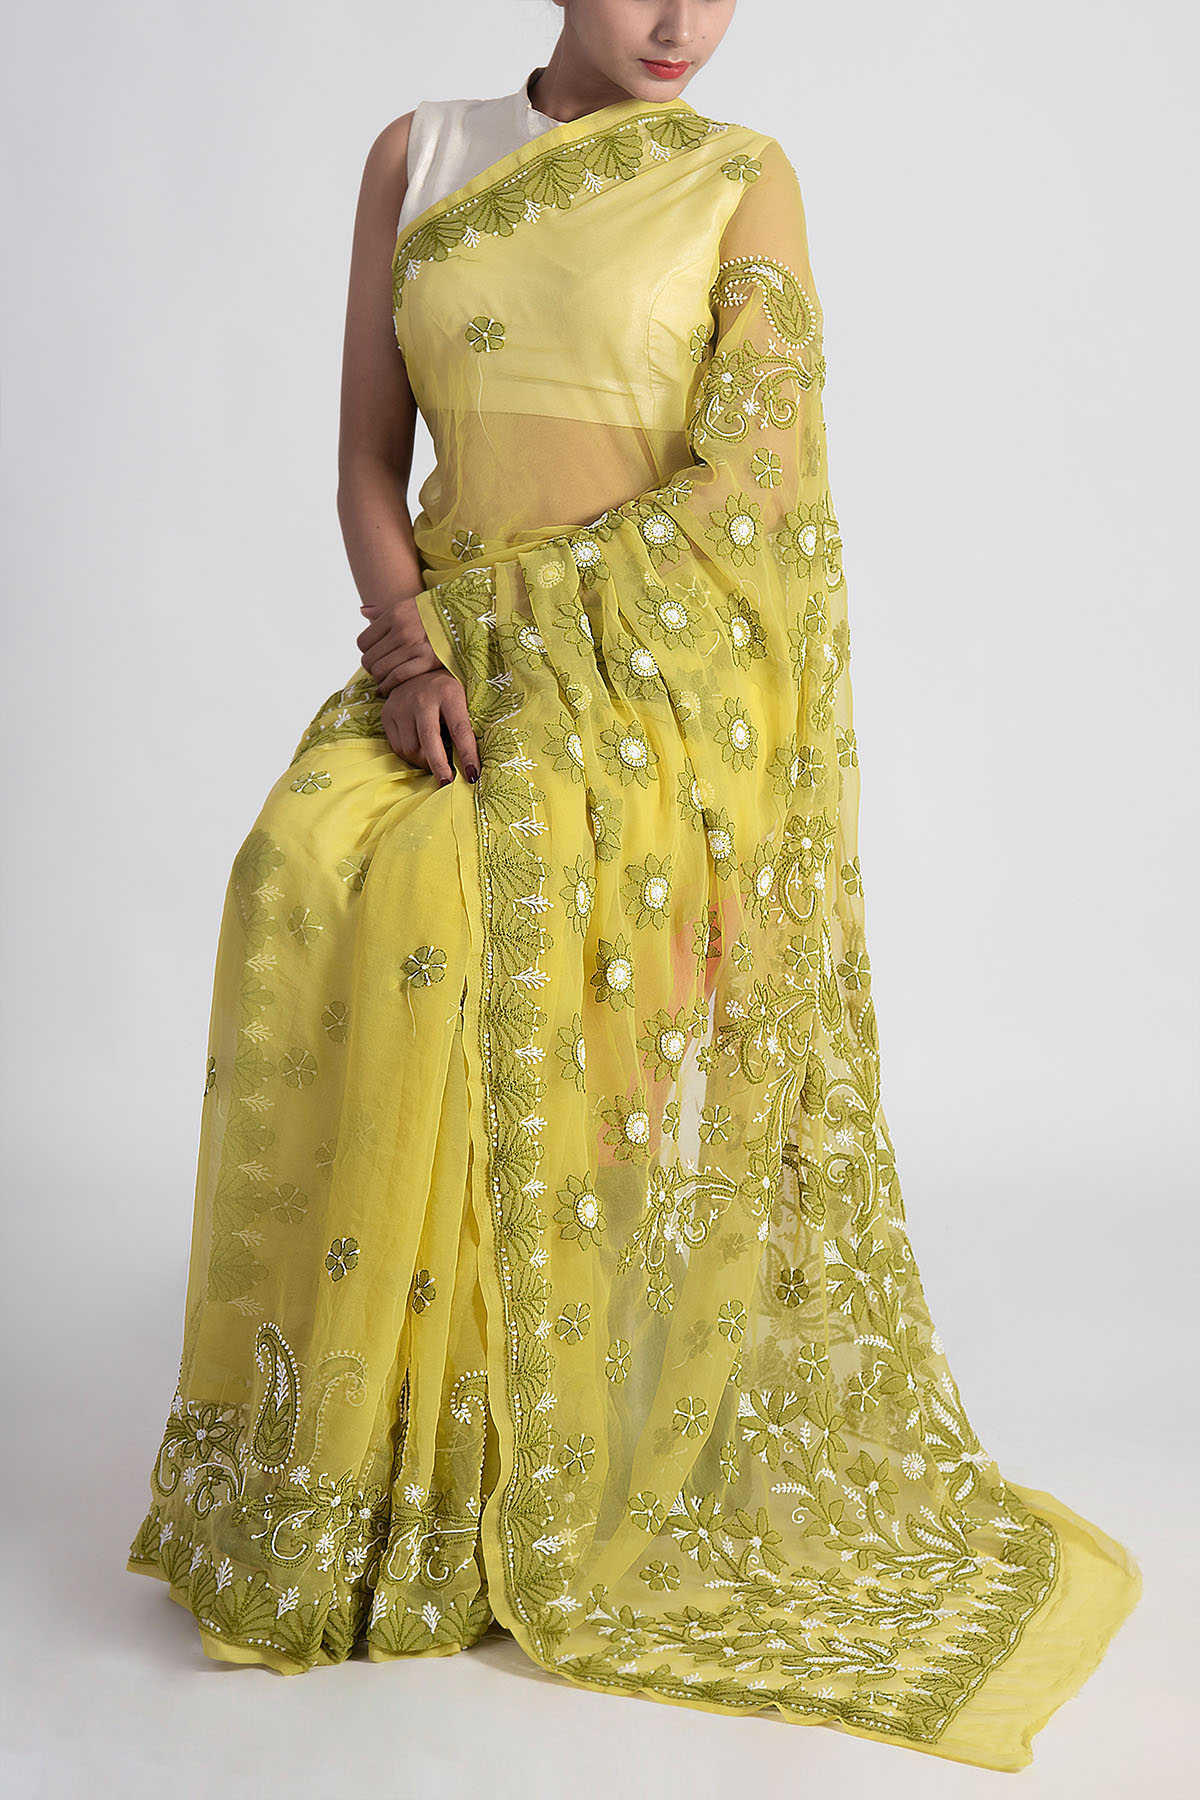 Hand Embroidered Green Colour Lucknowi Chikankari Saree (With Blouse - Georgette) GA250614